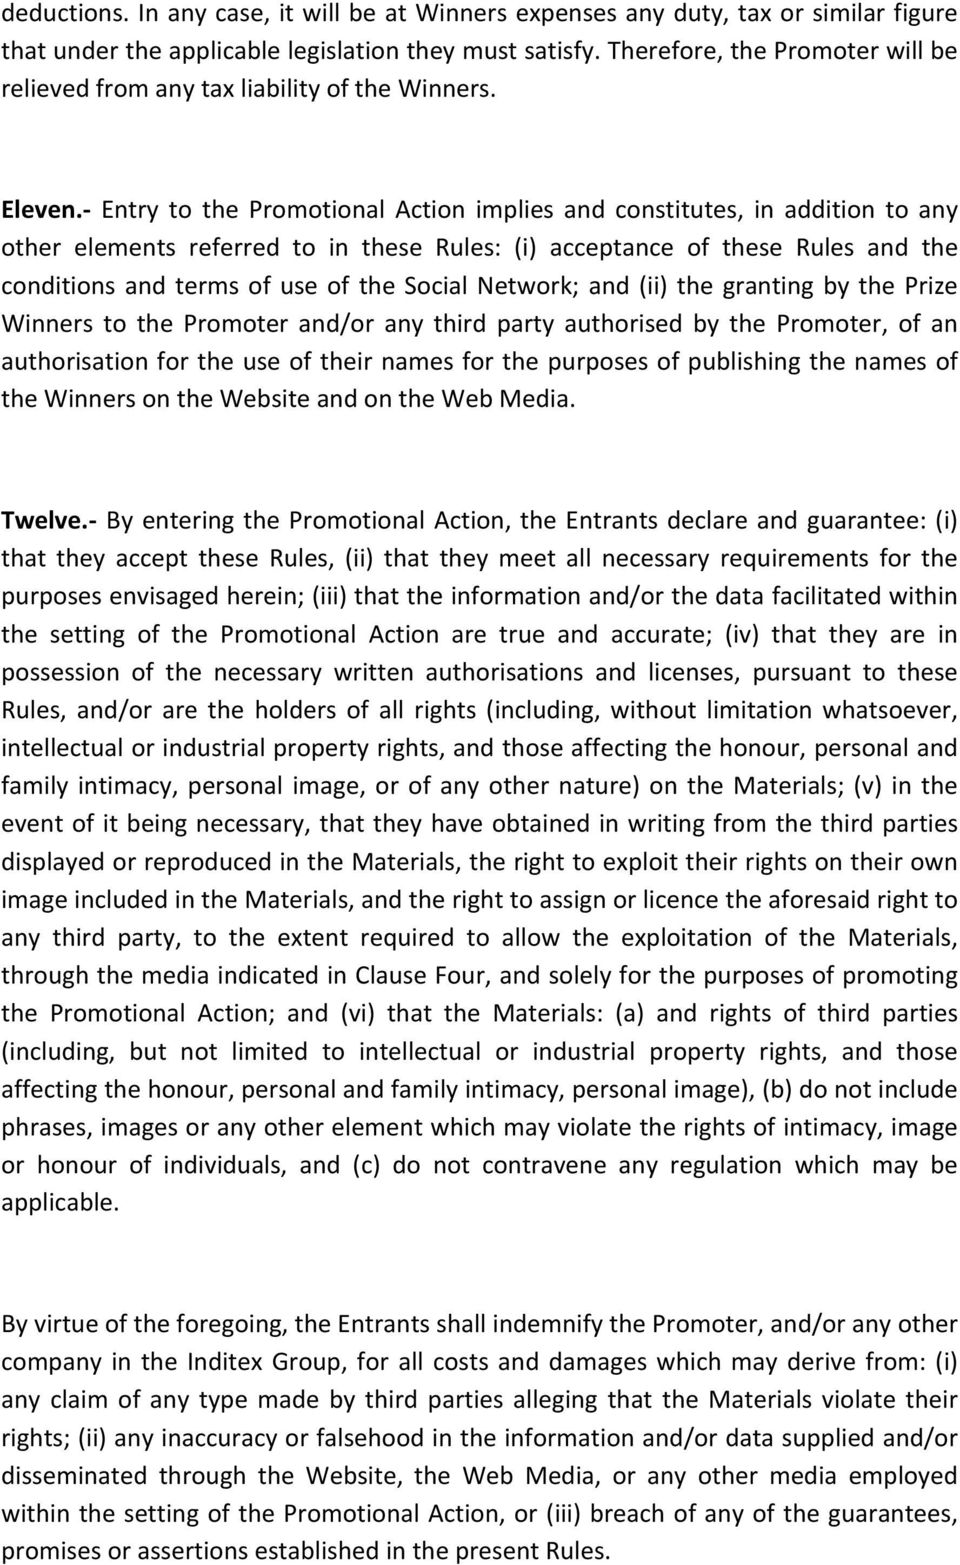 - Entry to the Promotional Action implies and constitutes, in addition to any other elements referred to in these Rules: (i) acceptance of these Rules and the conditions and terms of use of the